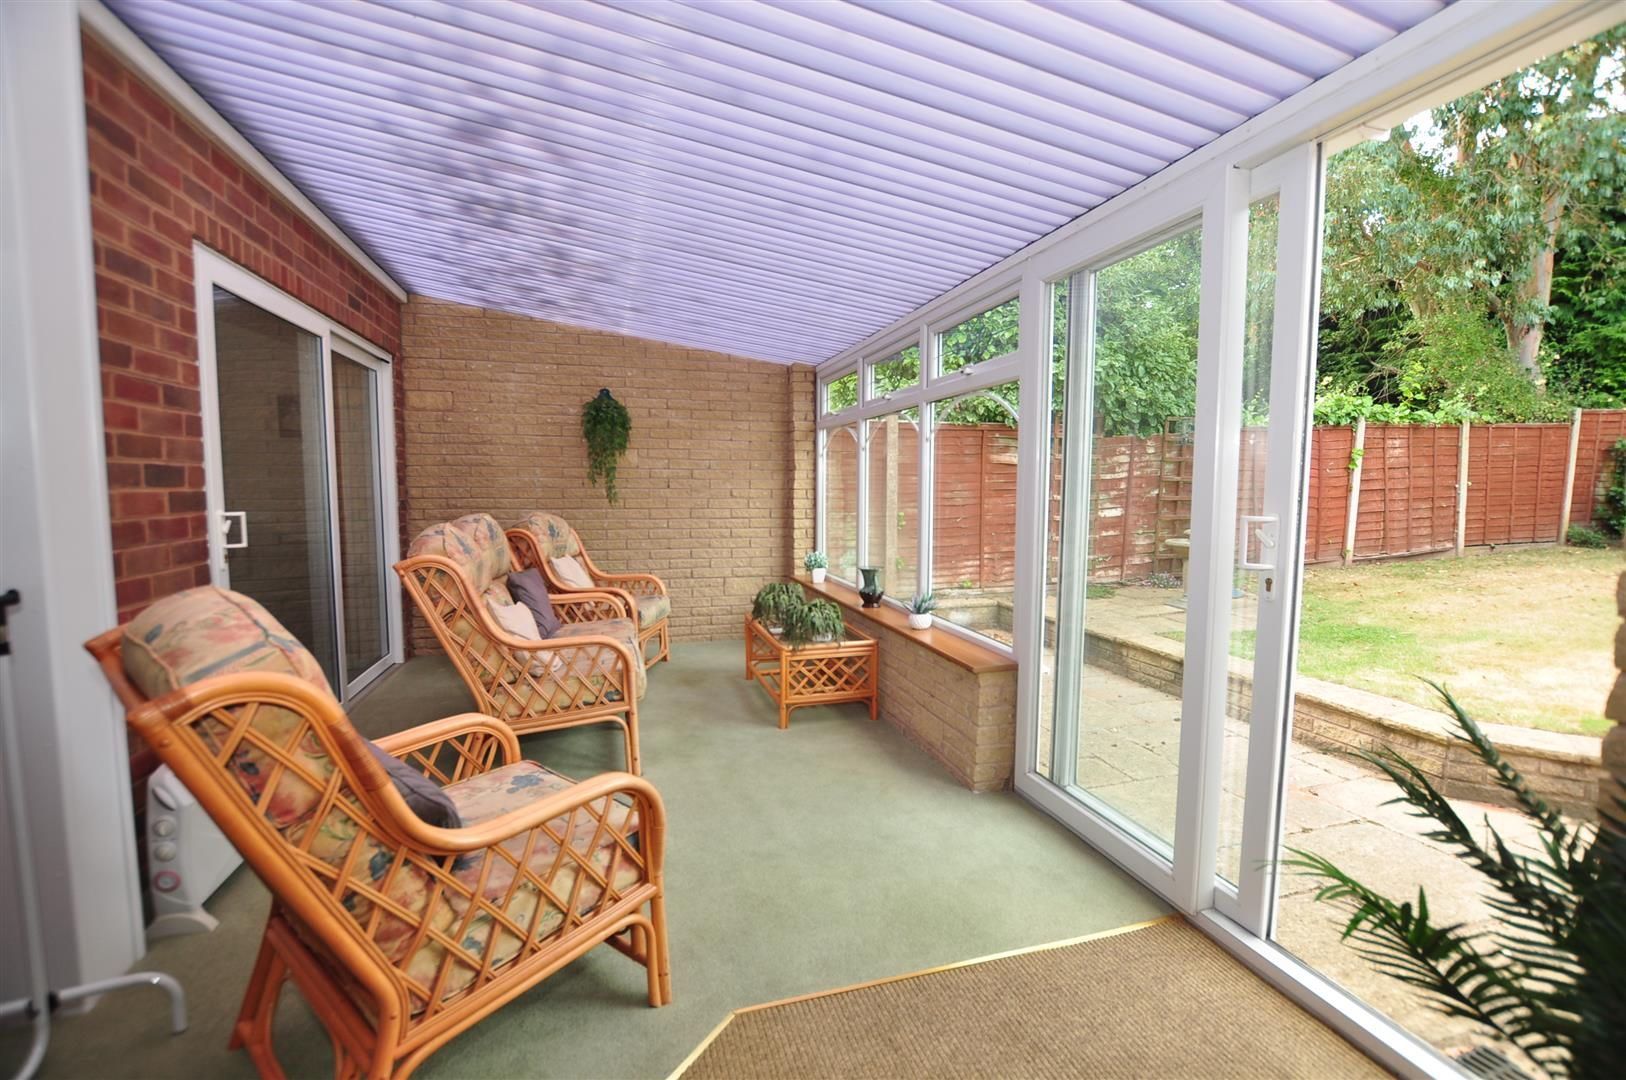 3 bed semi-detached for sale in Hagley  - Property Image 5